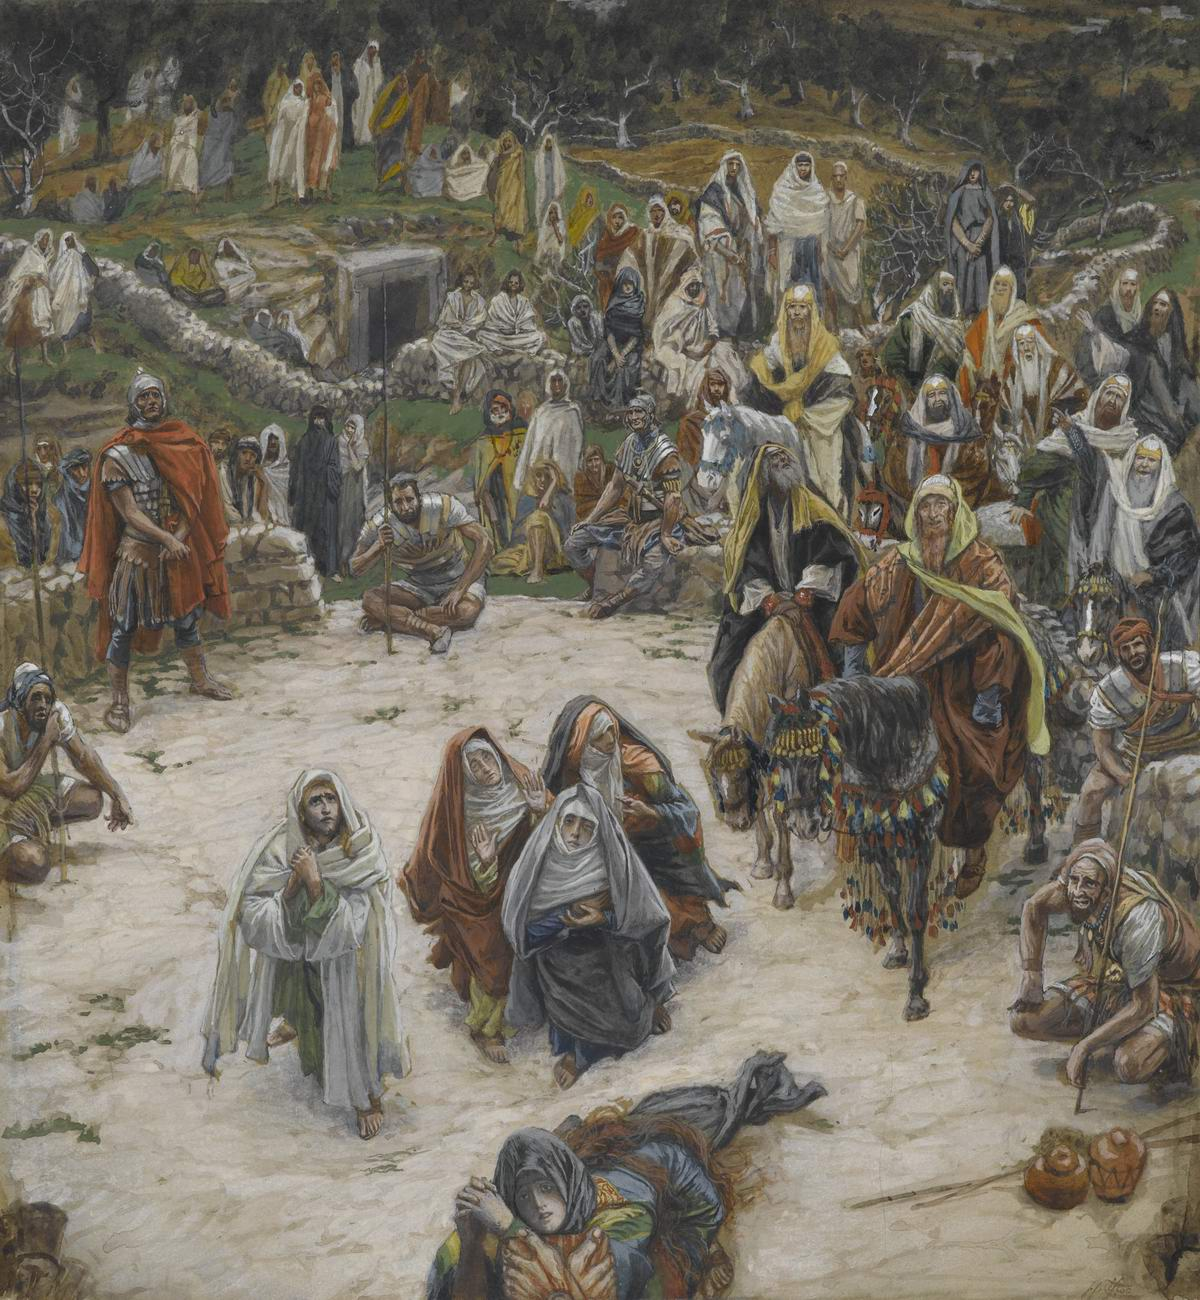 James Tissot. Crucifixion Seen from the Cross (1890)